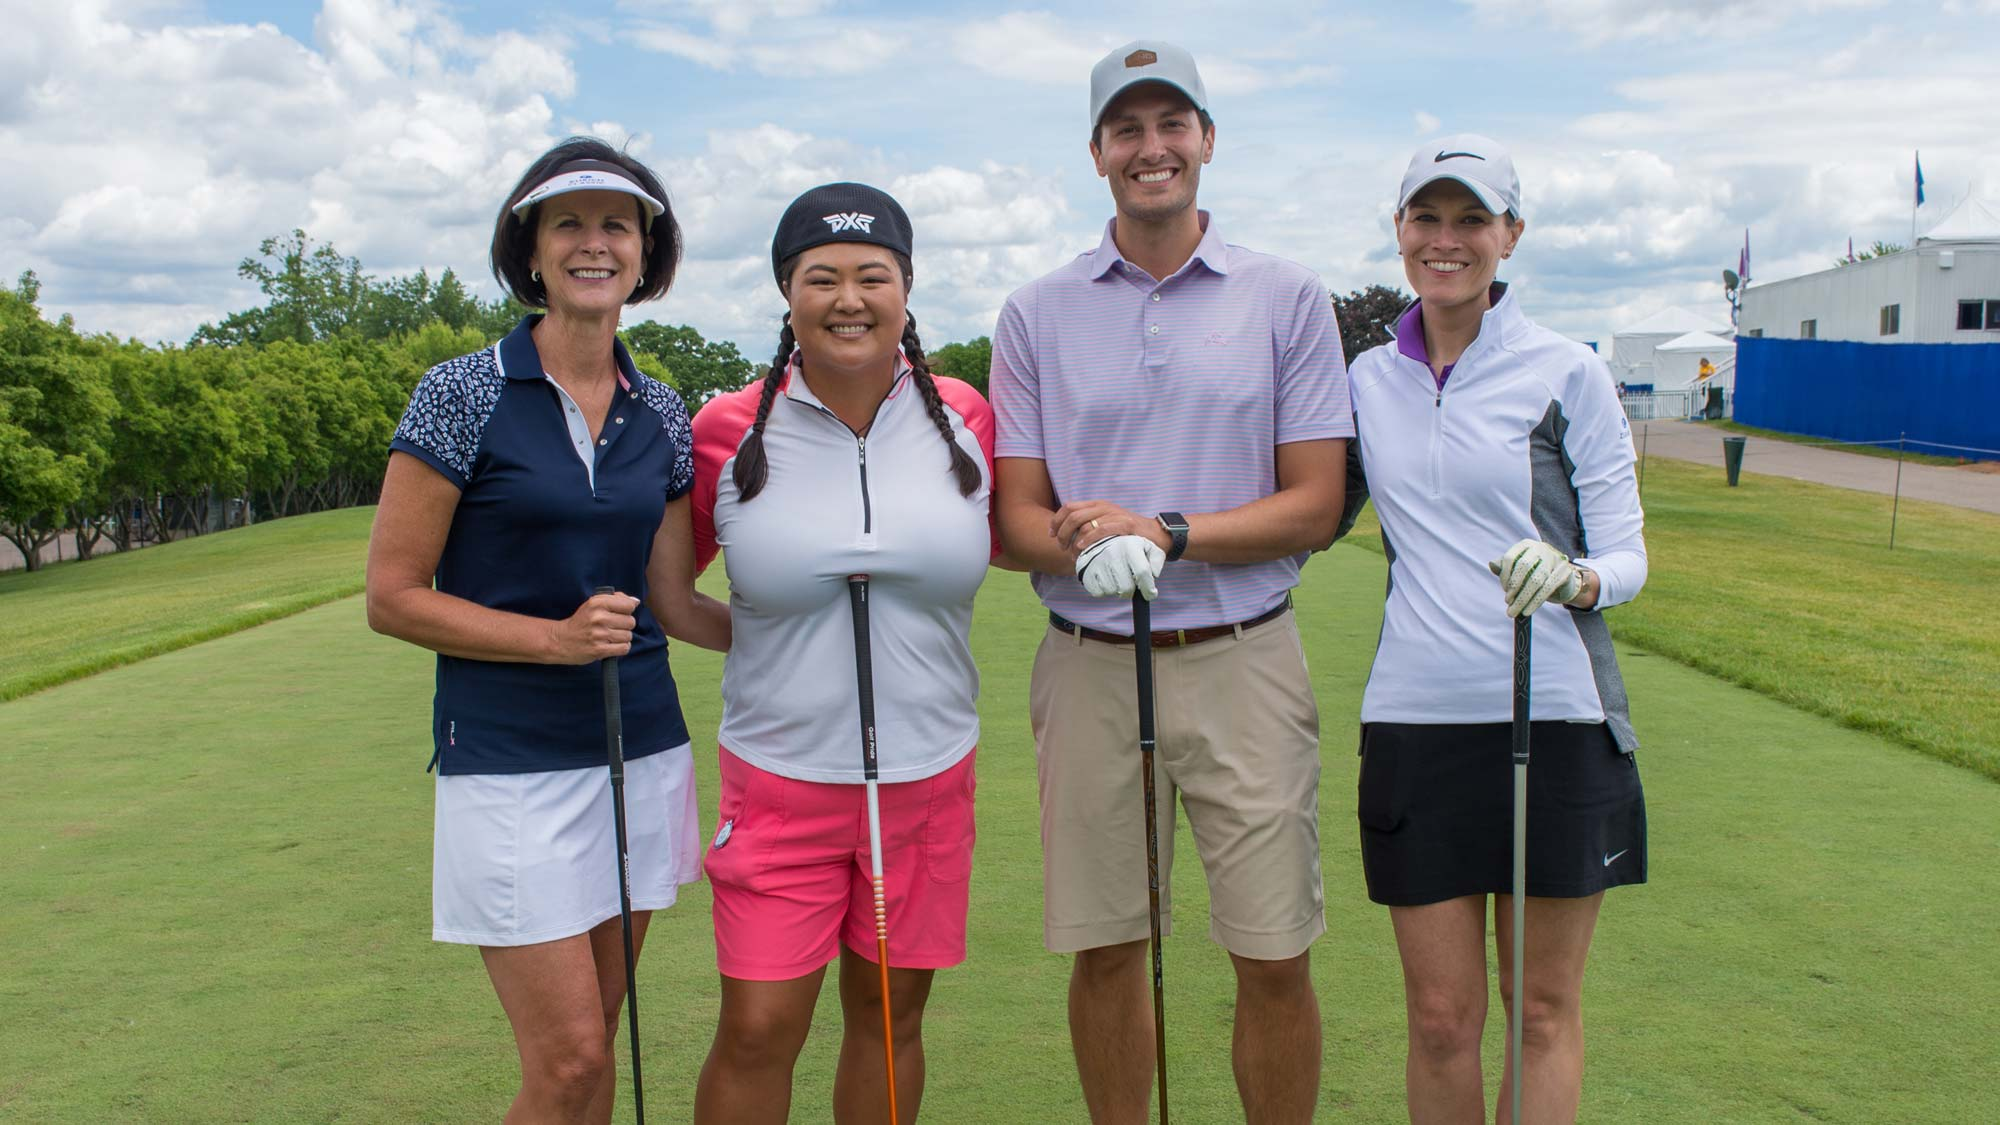 Christina Kim, Debra Broek, Veronica Romano and Blake Hoffarber during the Pro-Am Tournament for the 65th KPMG Women's PGA Championship held at Hazeltine National Golf Club